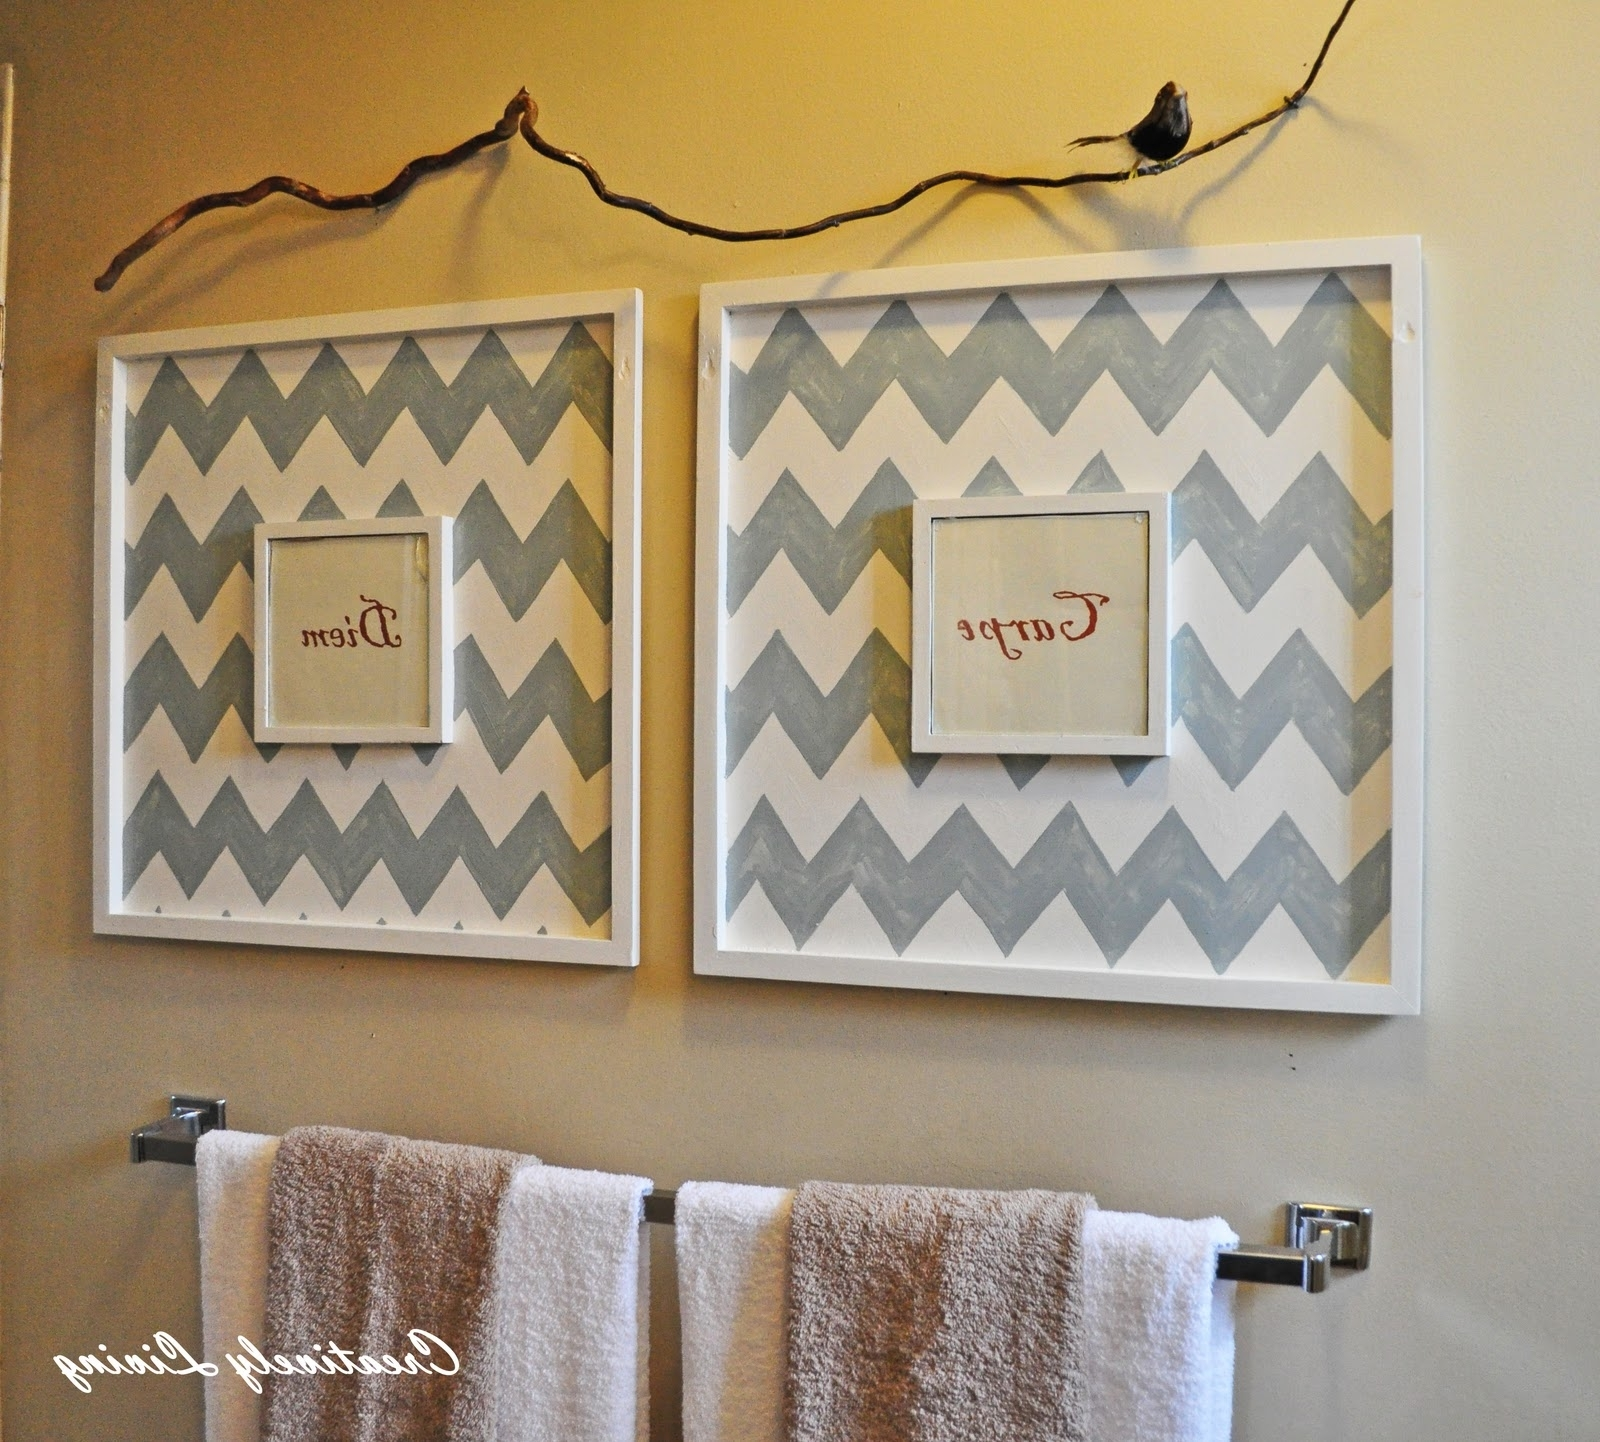 Bathroom Wall Art, Walls And Frames Ideas With Preferred Bath Wall Art (View 2 of 15)